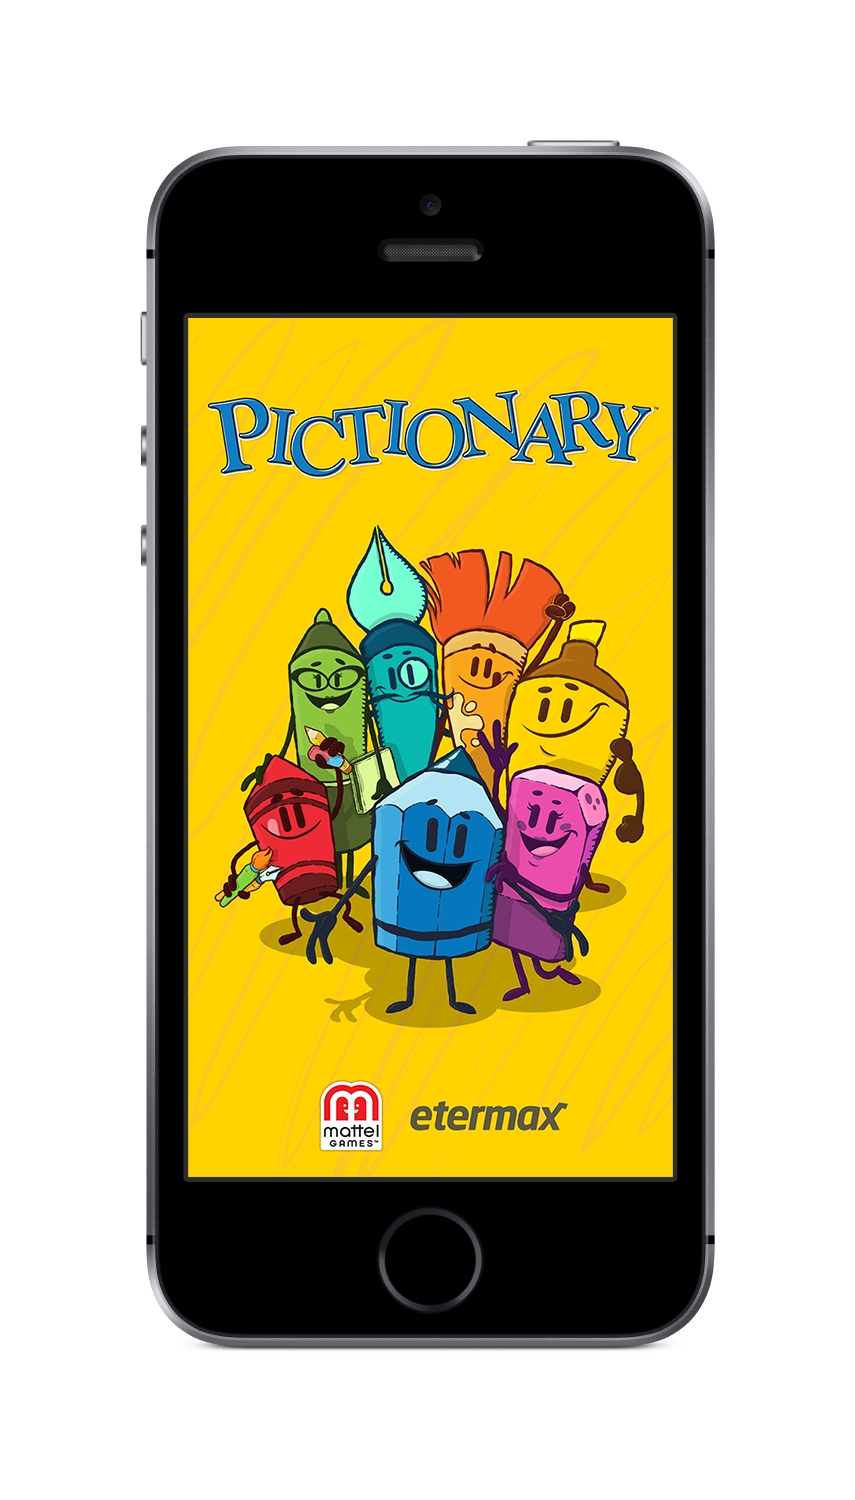 Pictionary_01